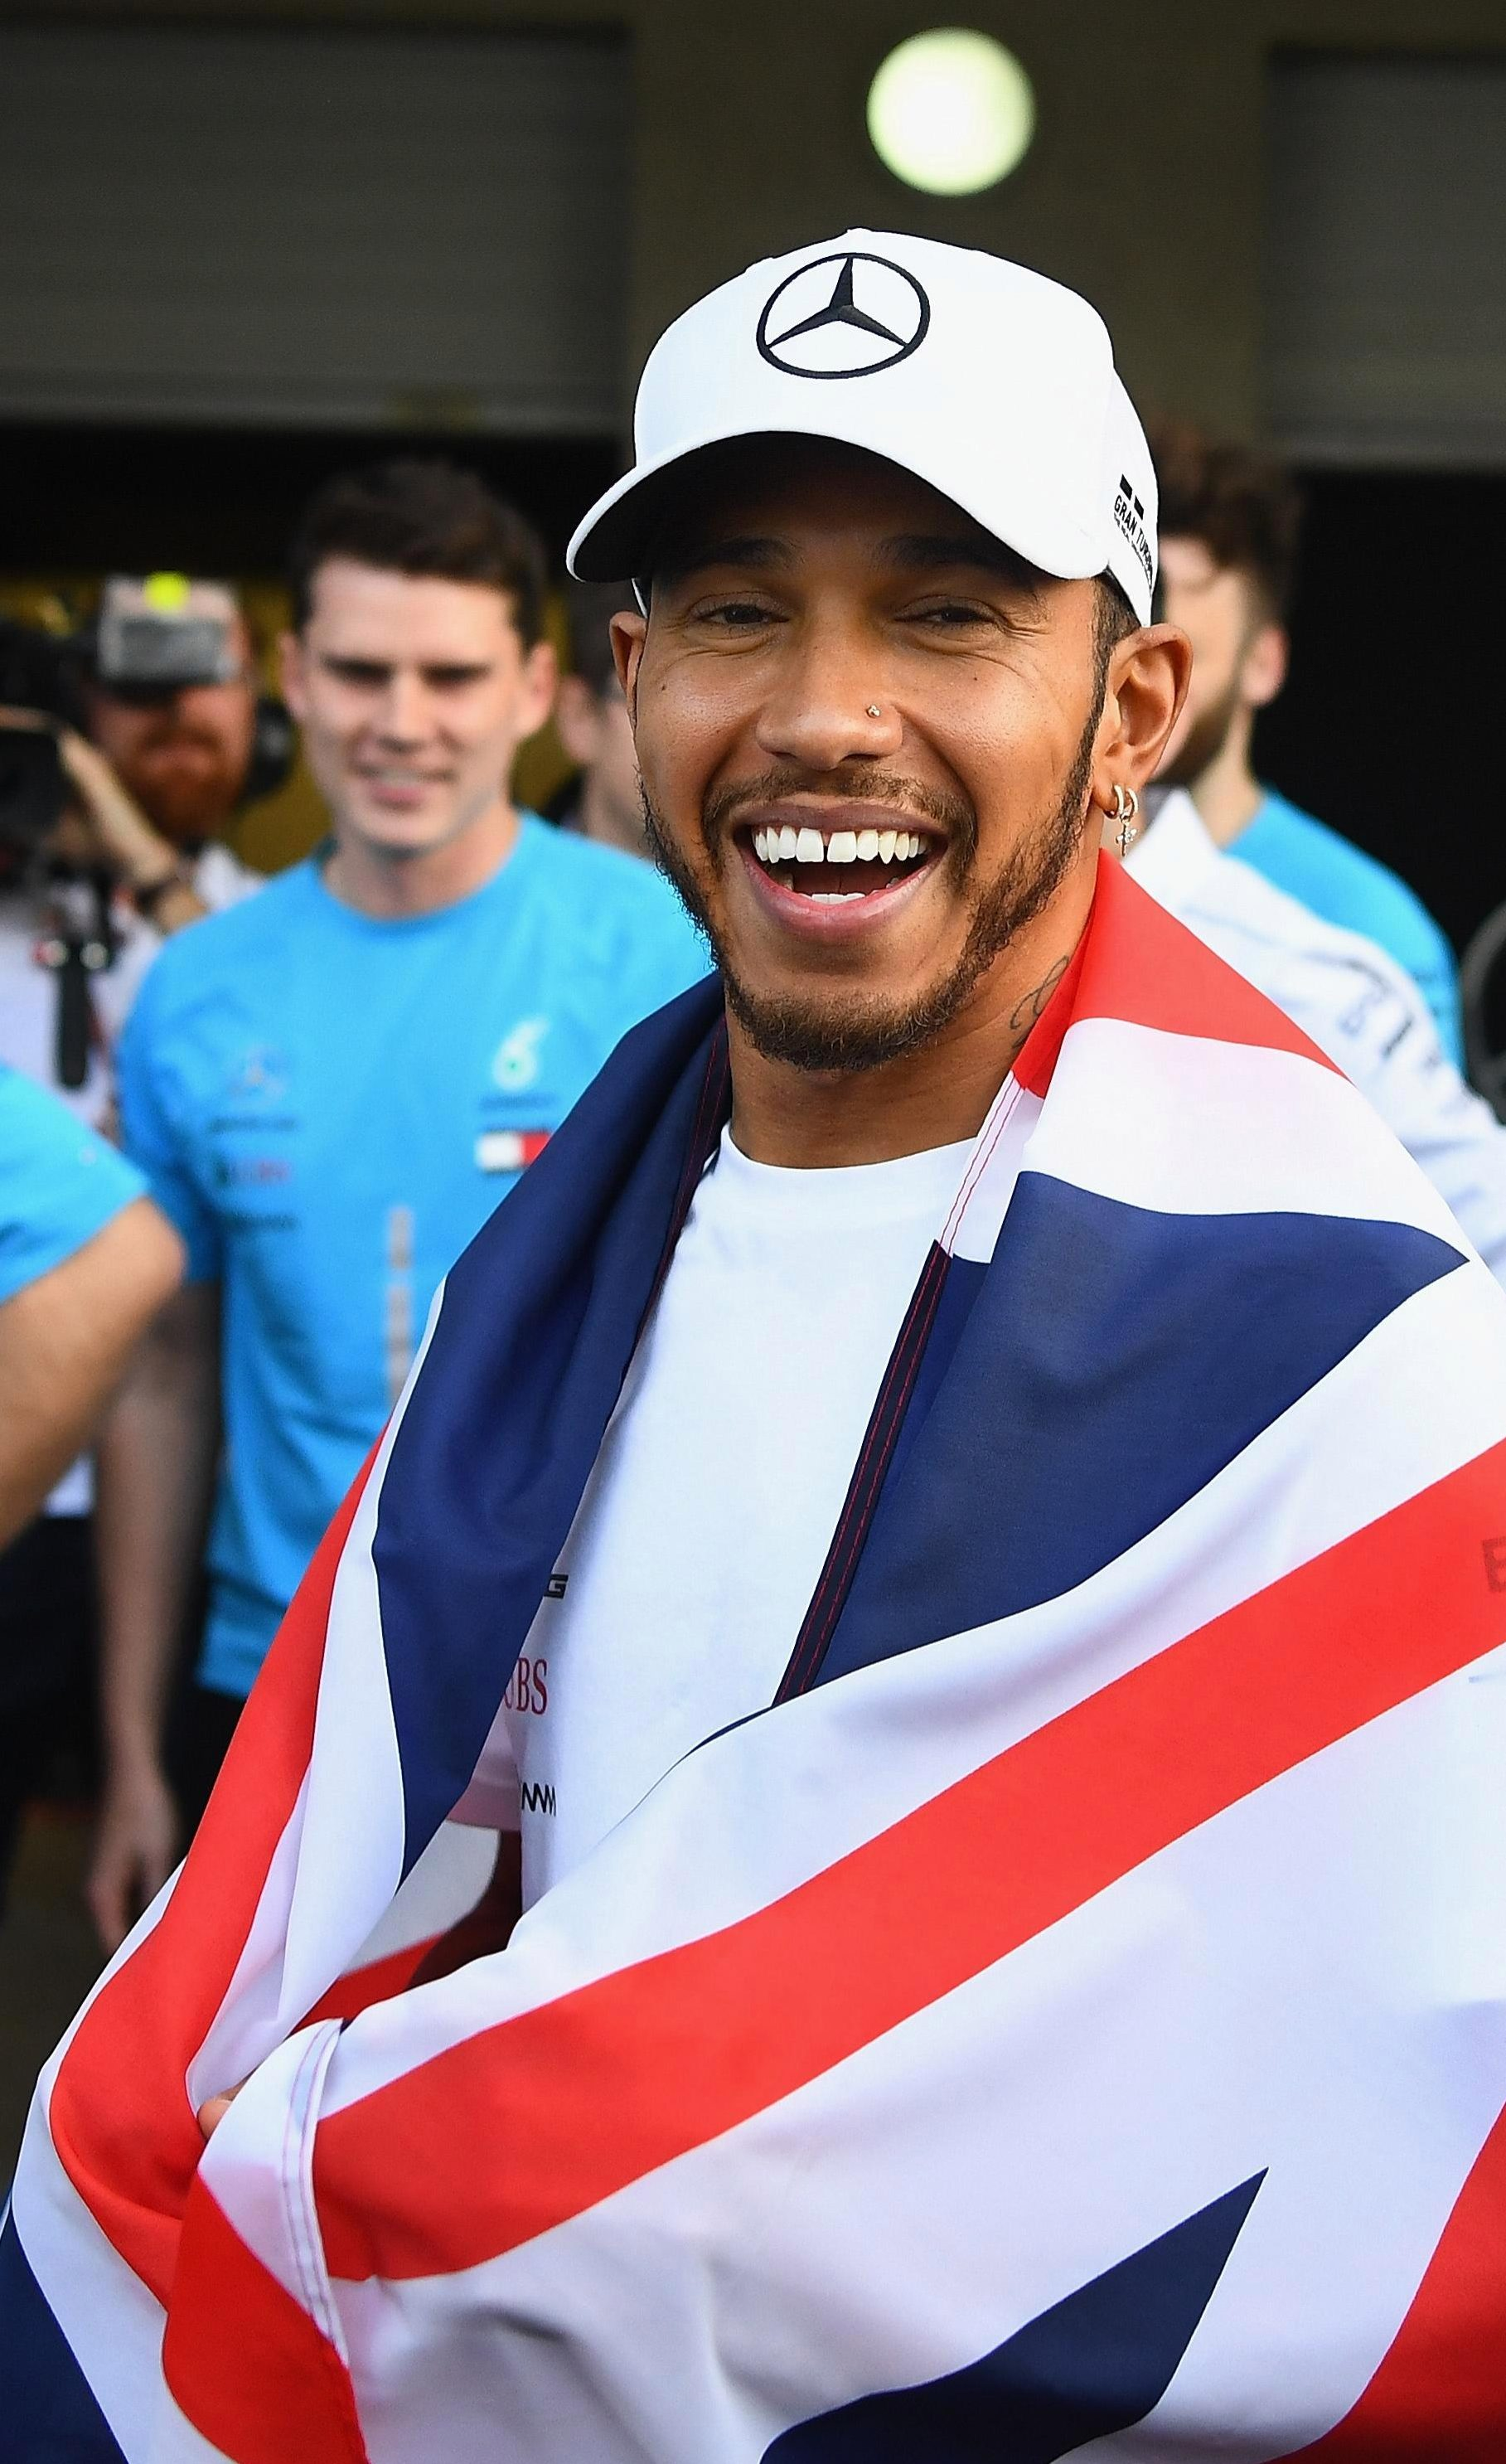 Lewis Hamilton clinched the Formula One World Championship